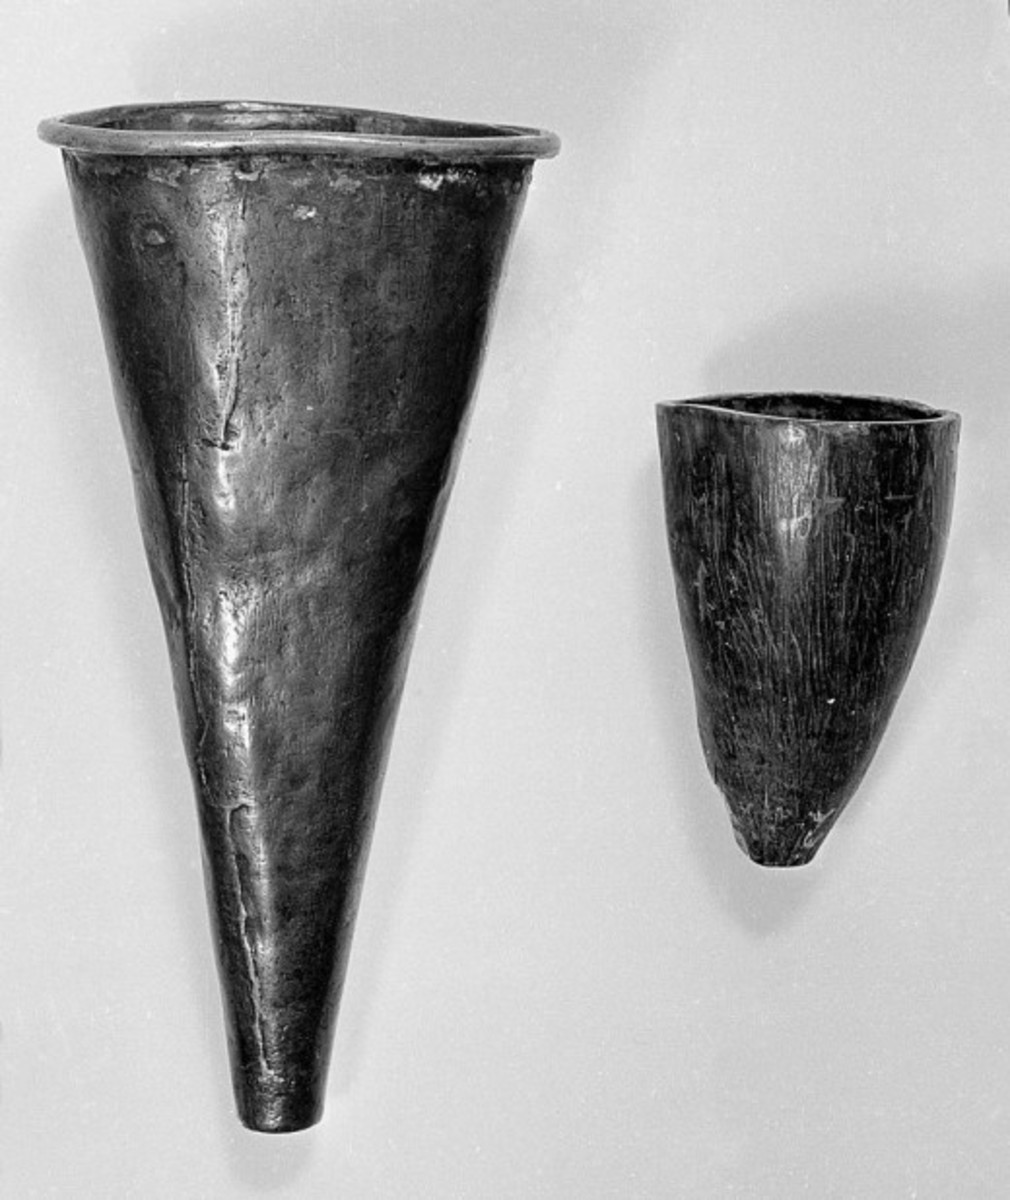 Indian cupping tools. The left made out of copper. The right from an animal horn.-